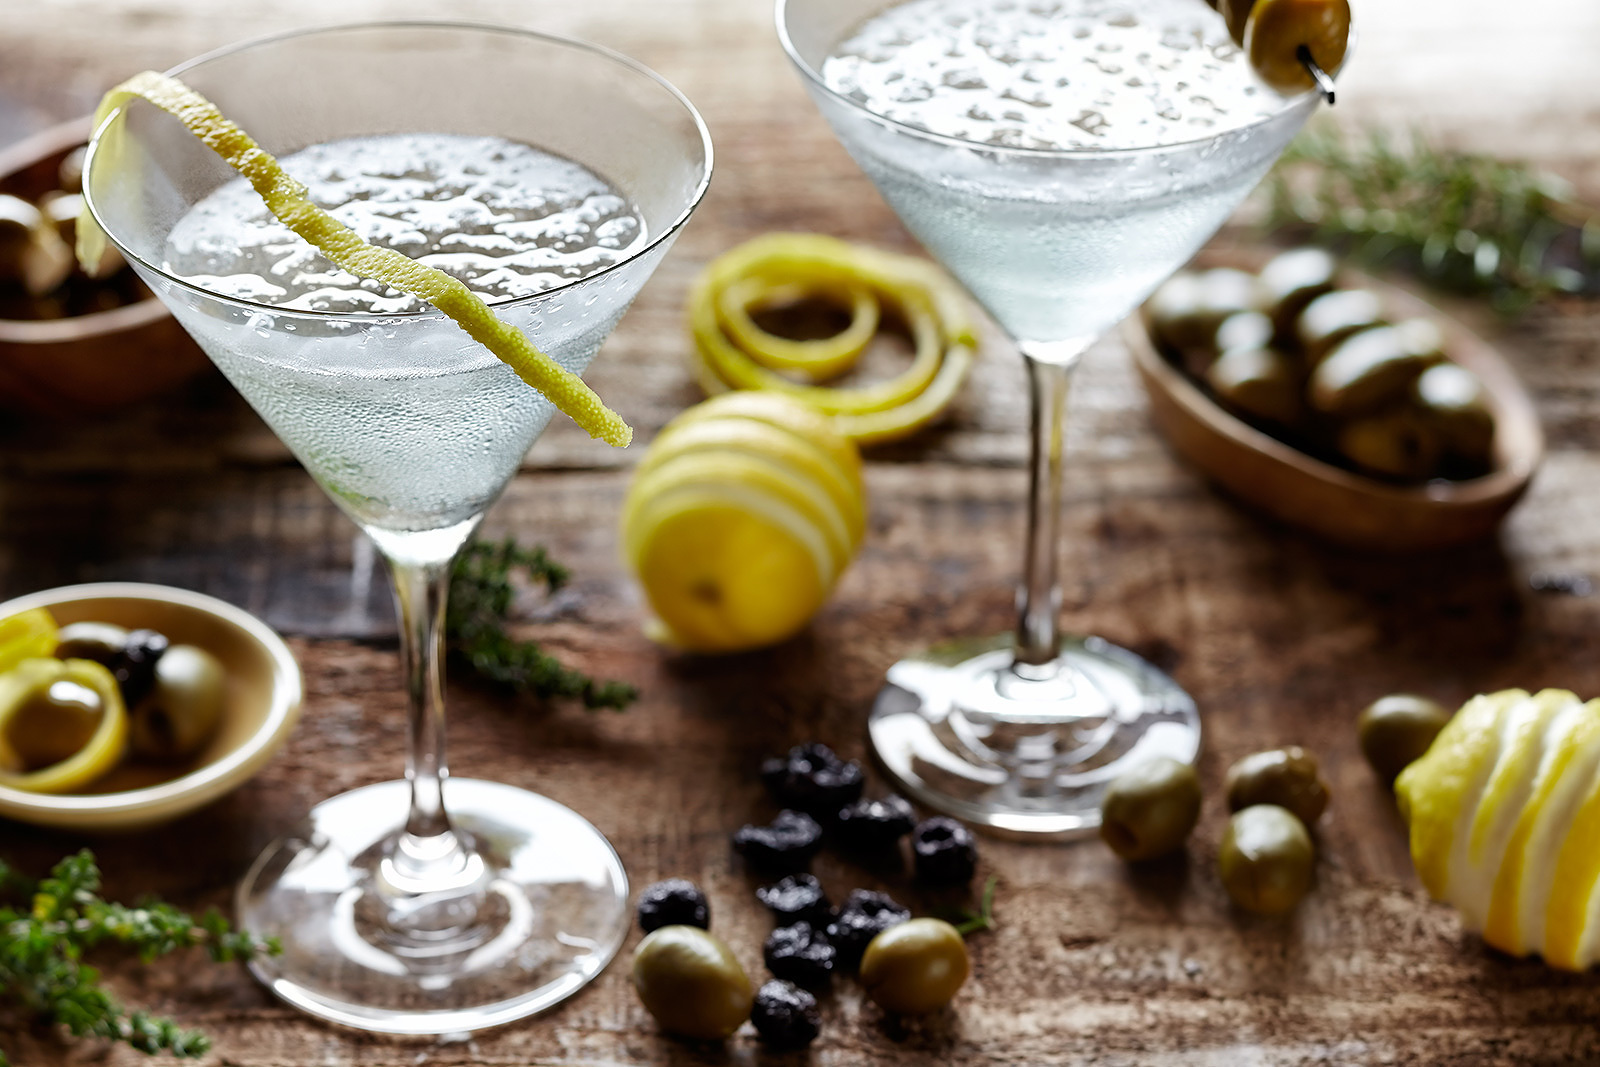 Martini Glass With Olives  | Dovis Bird Agency Photography